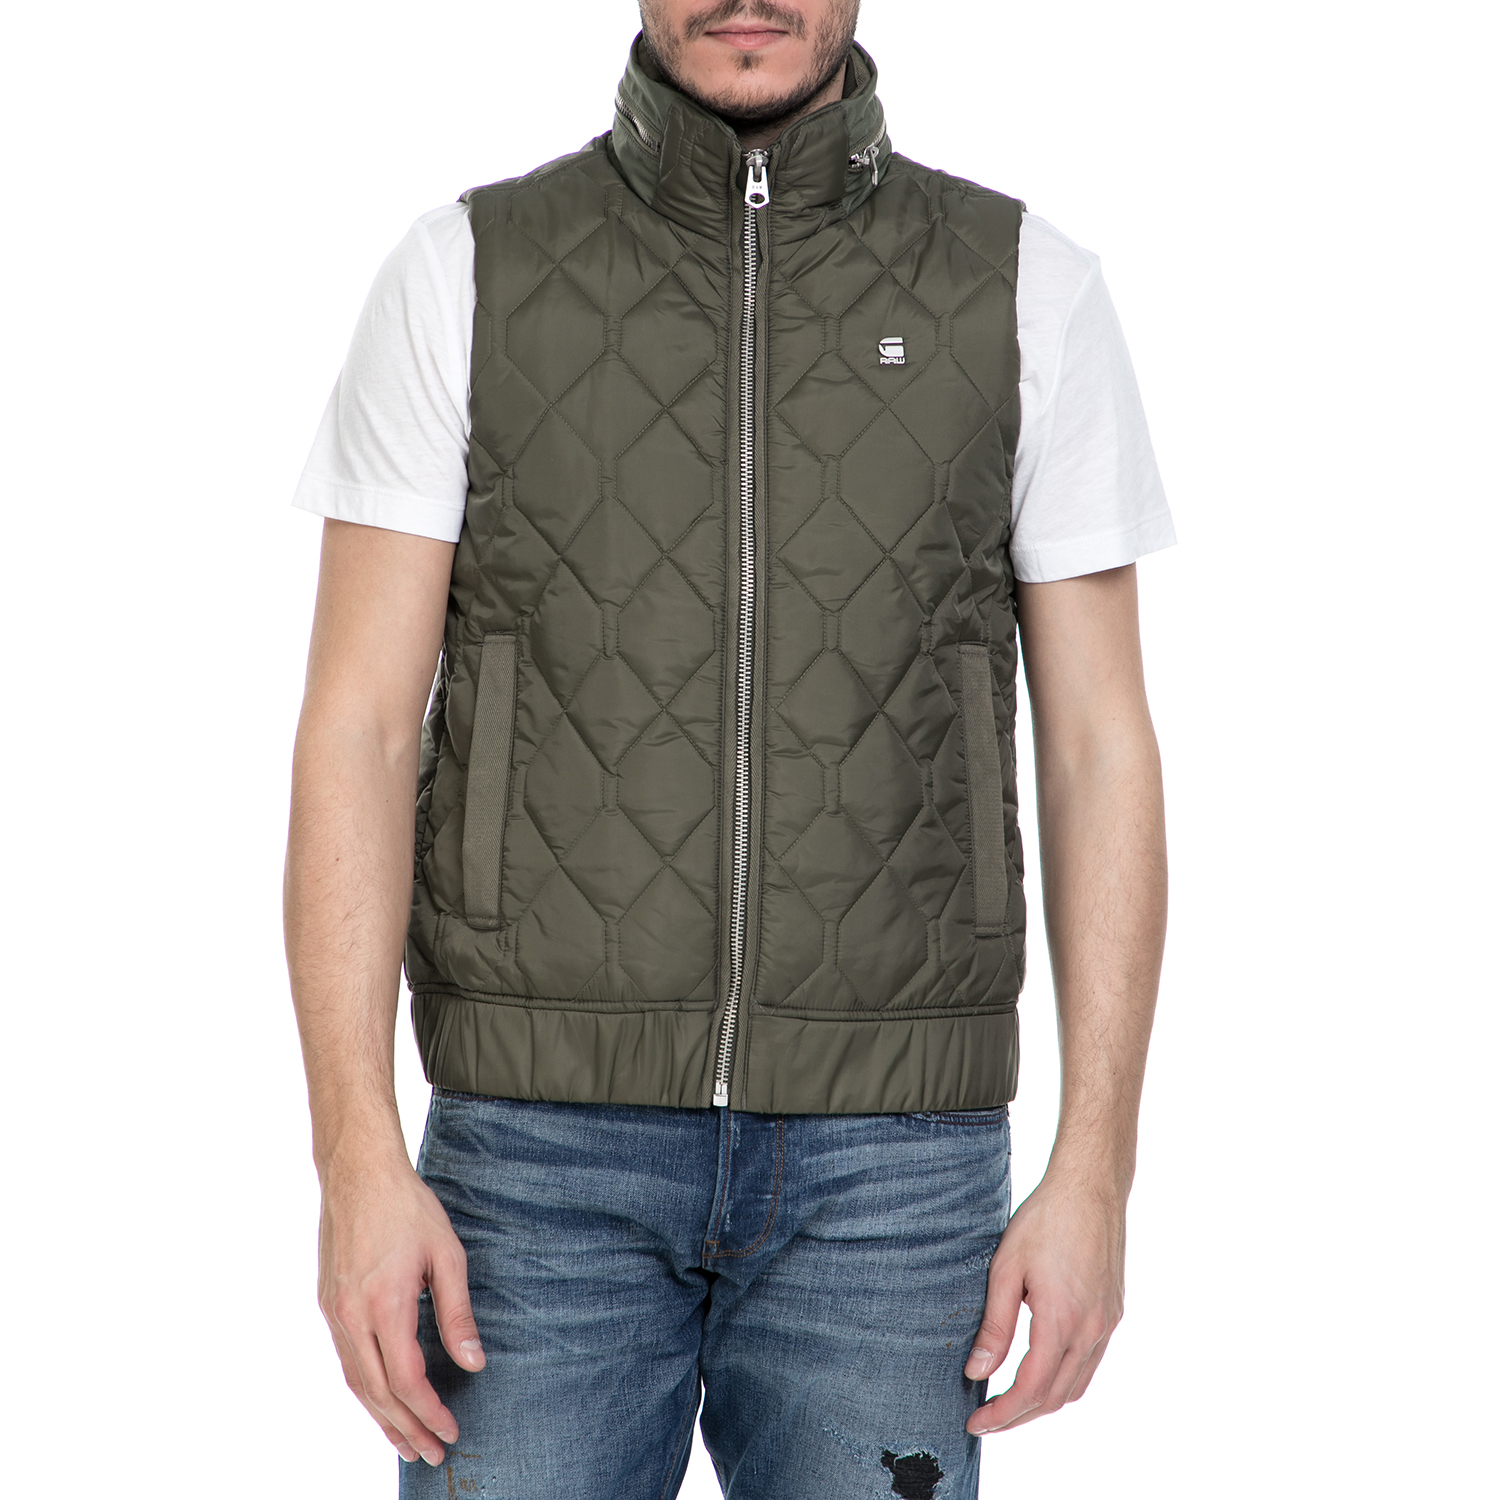 G-STAR RAW - Ανδρικό αμάνικο μπουφάν G-Star Raw Meefic quilted χακί ανδρικά ρούχα πανωφόρια γιλέκα